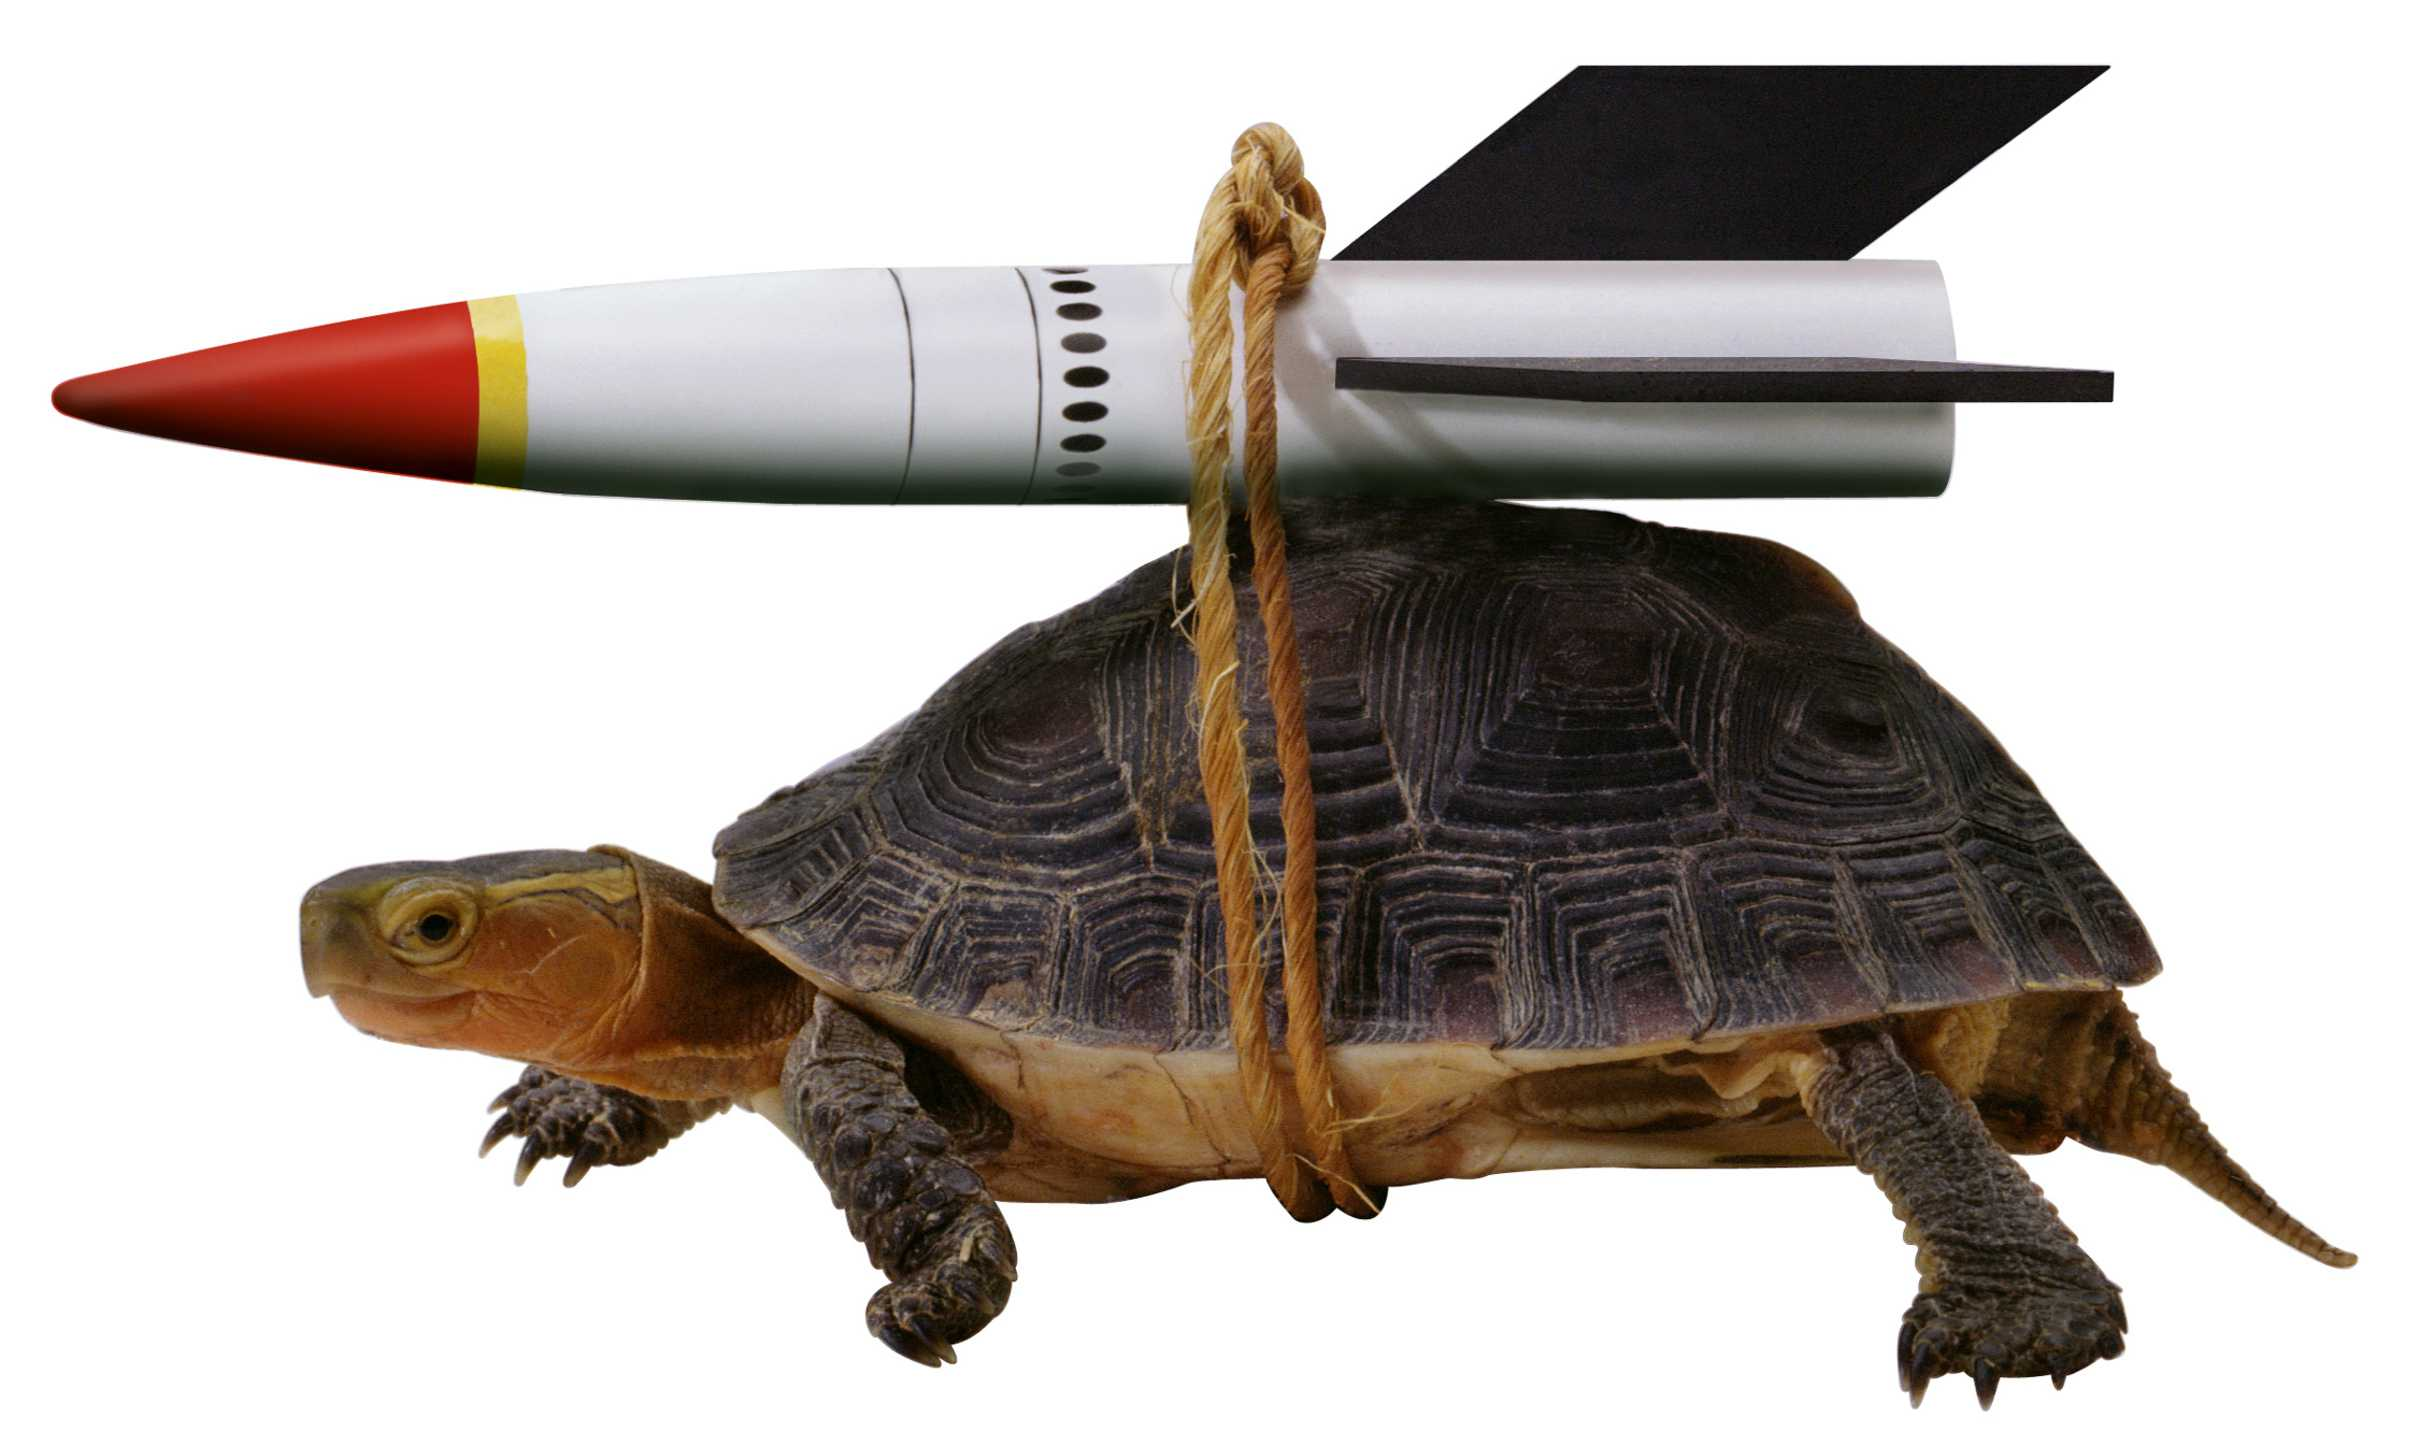 A turtle with a small rocket strapped to its back with rope on a white background.